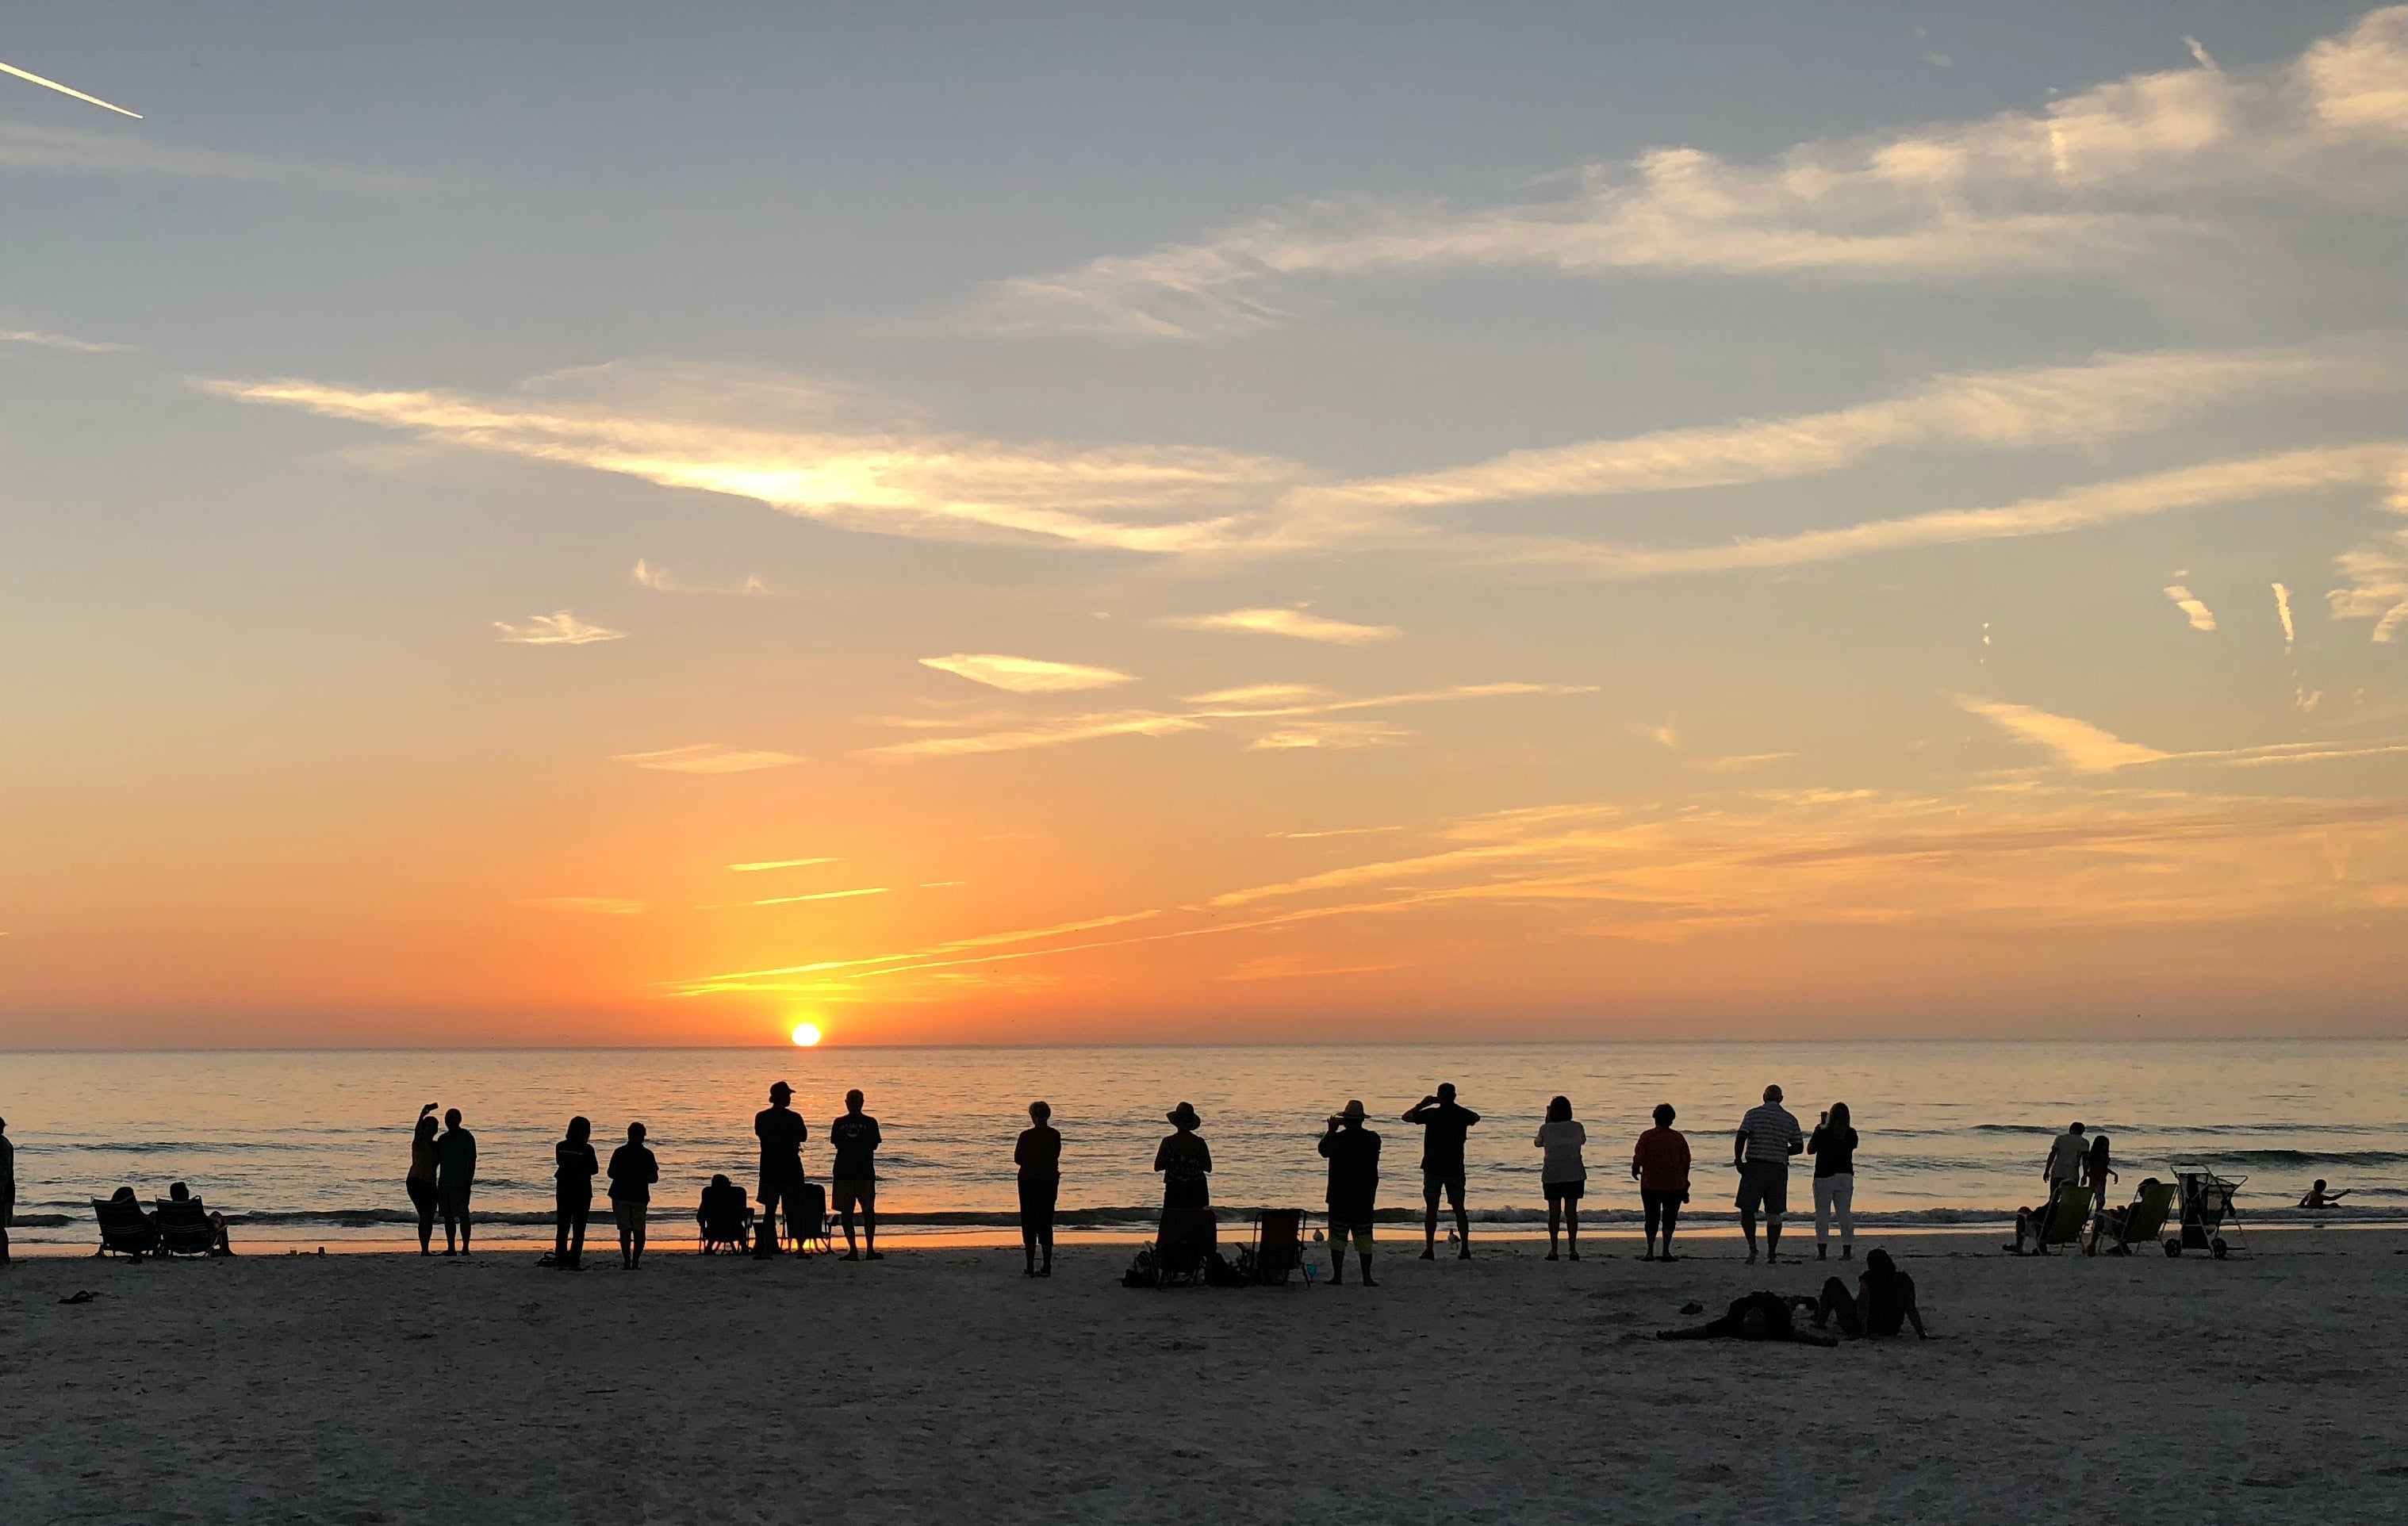 A group of friends enjoying the sunset at the beach